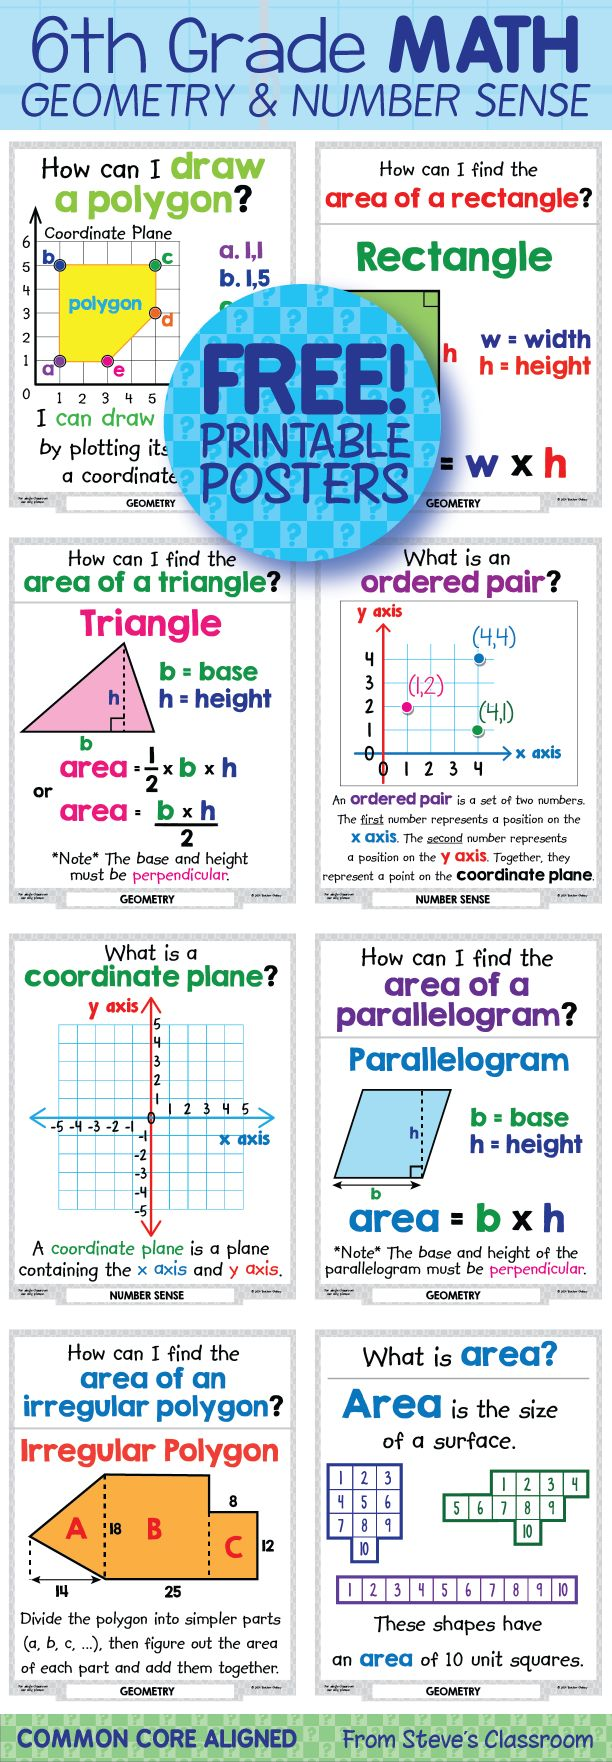 FREE! 6th grade geometry and number sense printable posters/anchor charts/focus walls. The illustrations help students understand mathematical finding area, plotting shapes on the coordinate plane with ordered pairs.